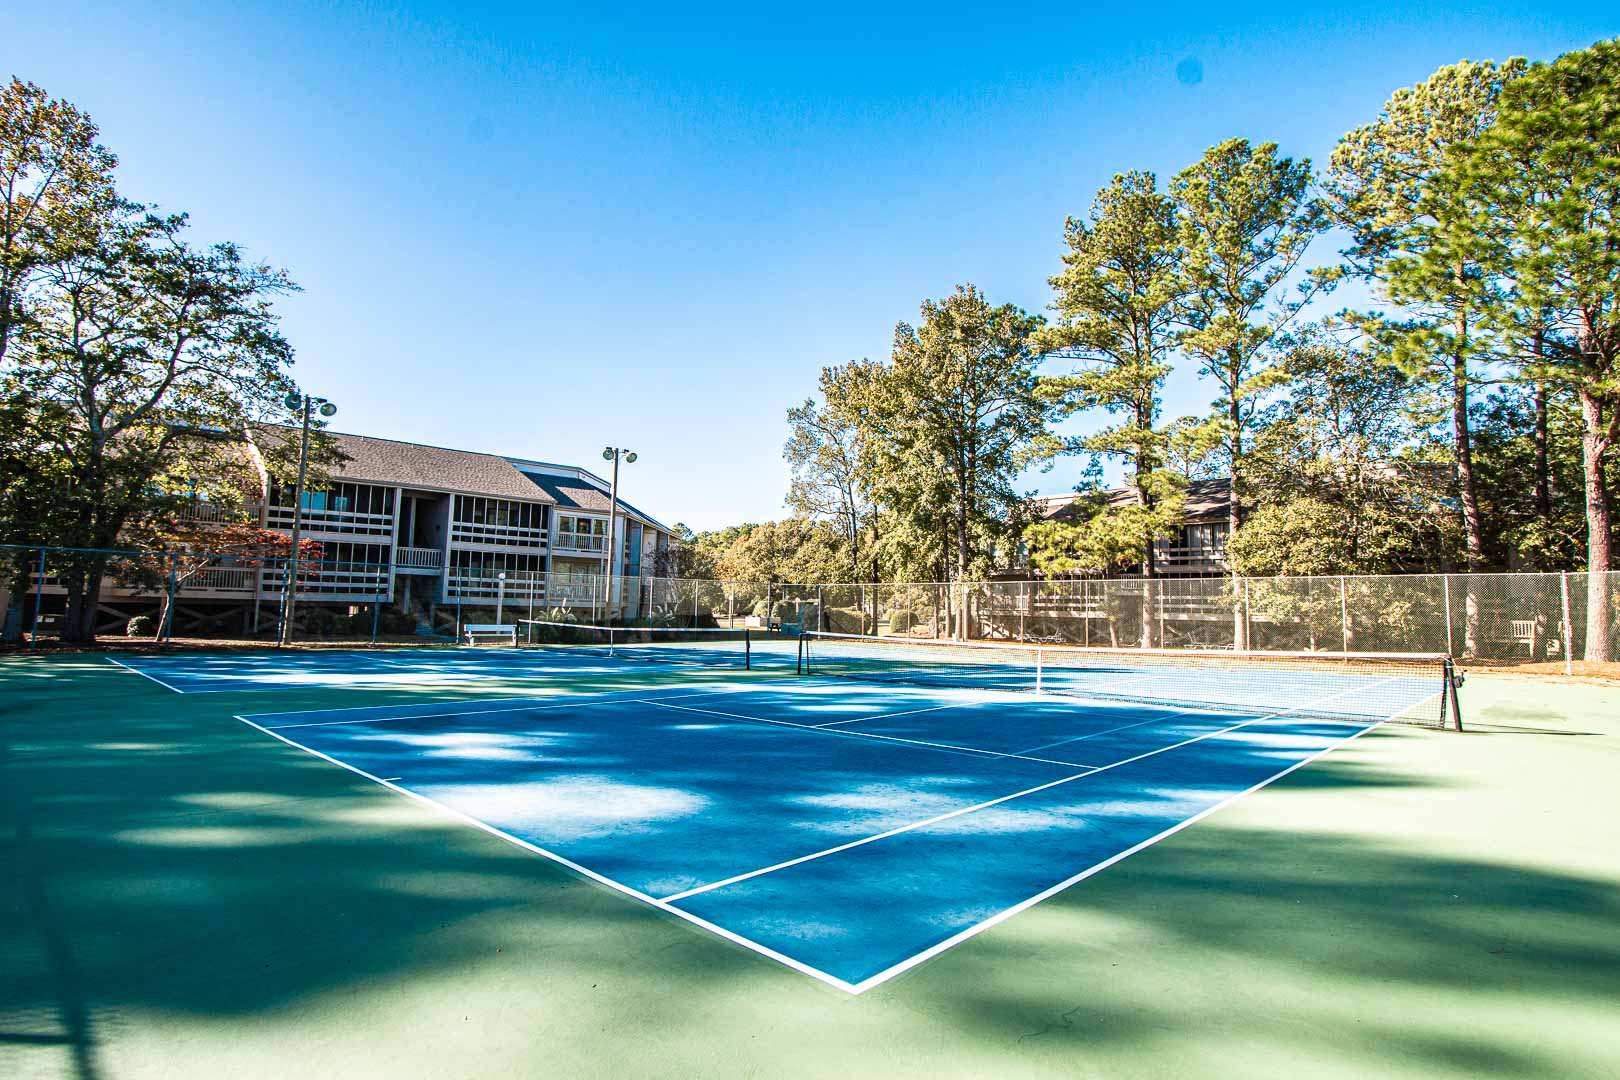 A spacious outdoor tennis court at VRI's Sandcastle Cove in New Bern, North Carolina.